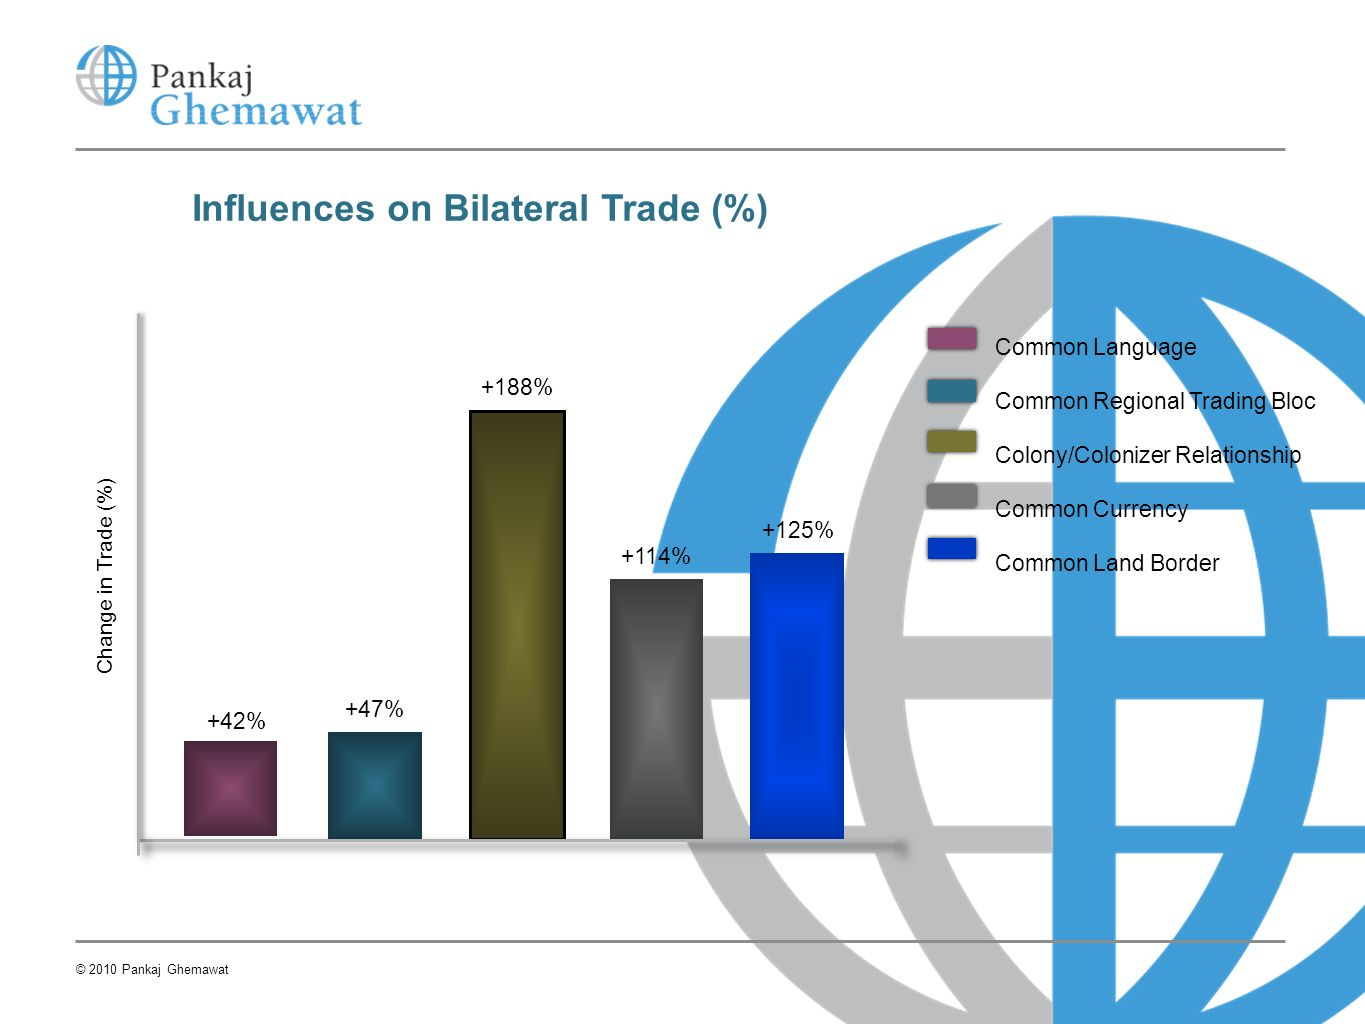 Influences on Bilateral Trade (%)